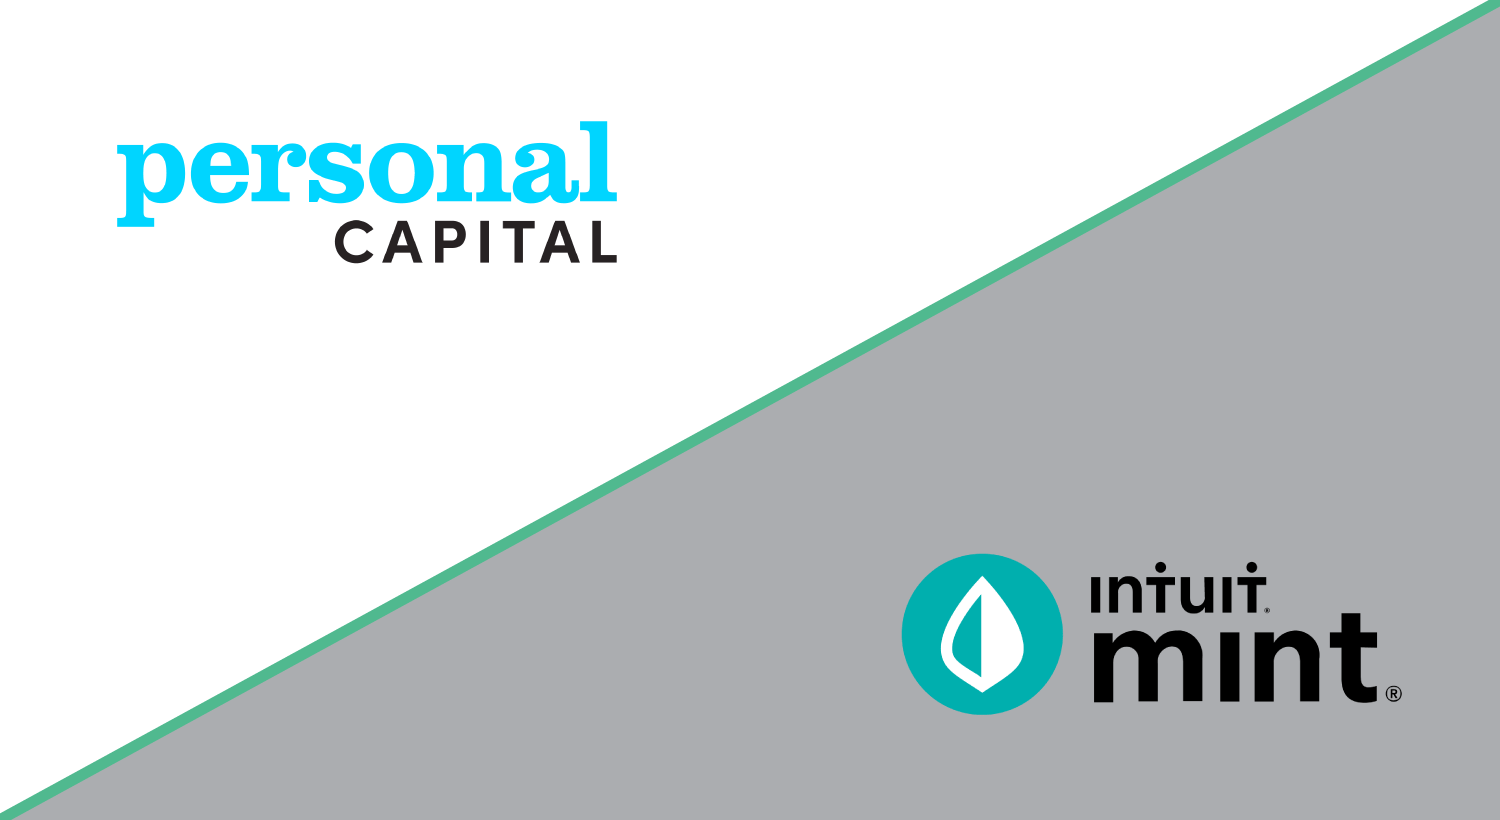 personal capital and mint app logos